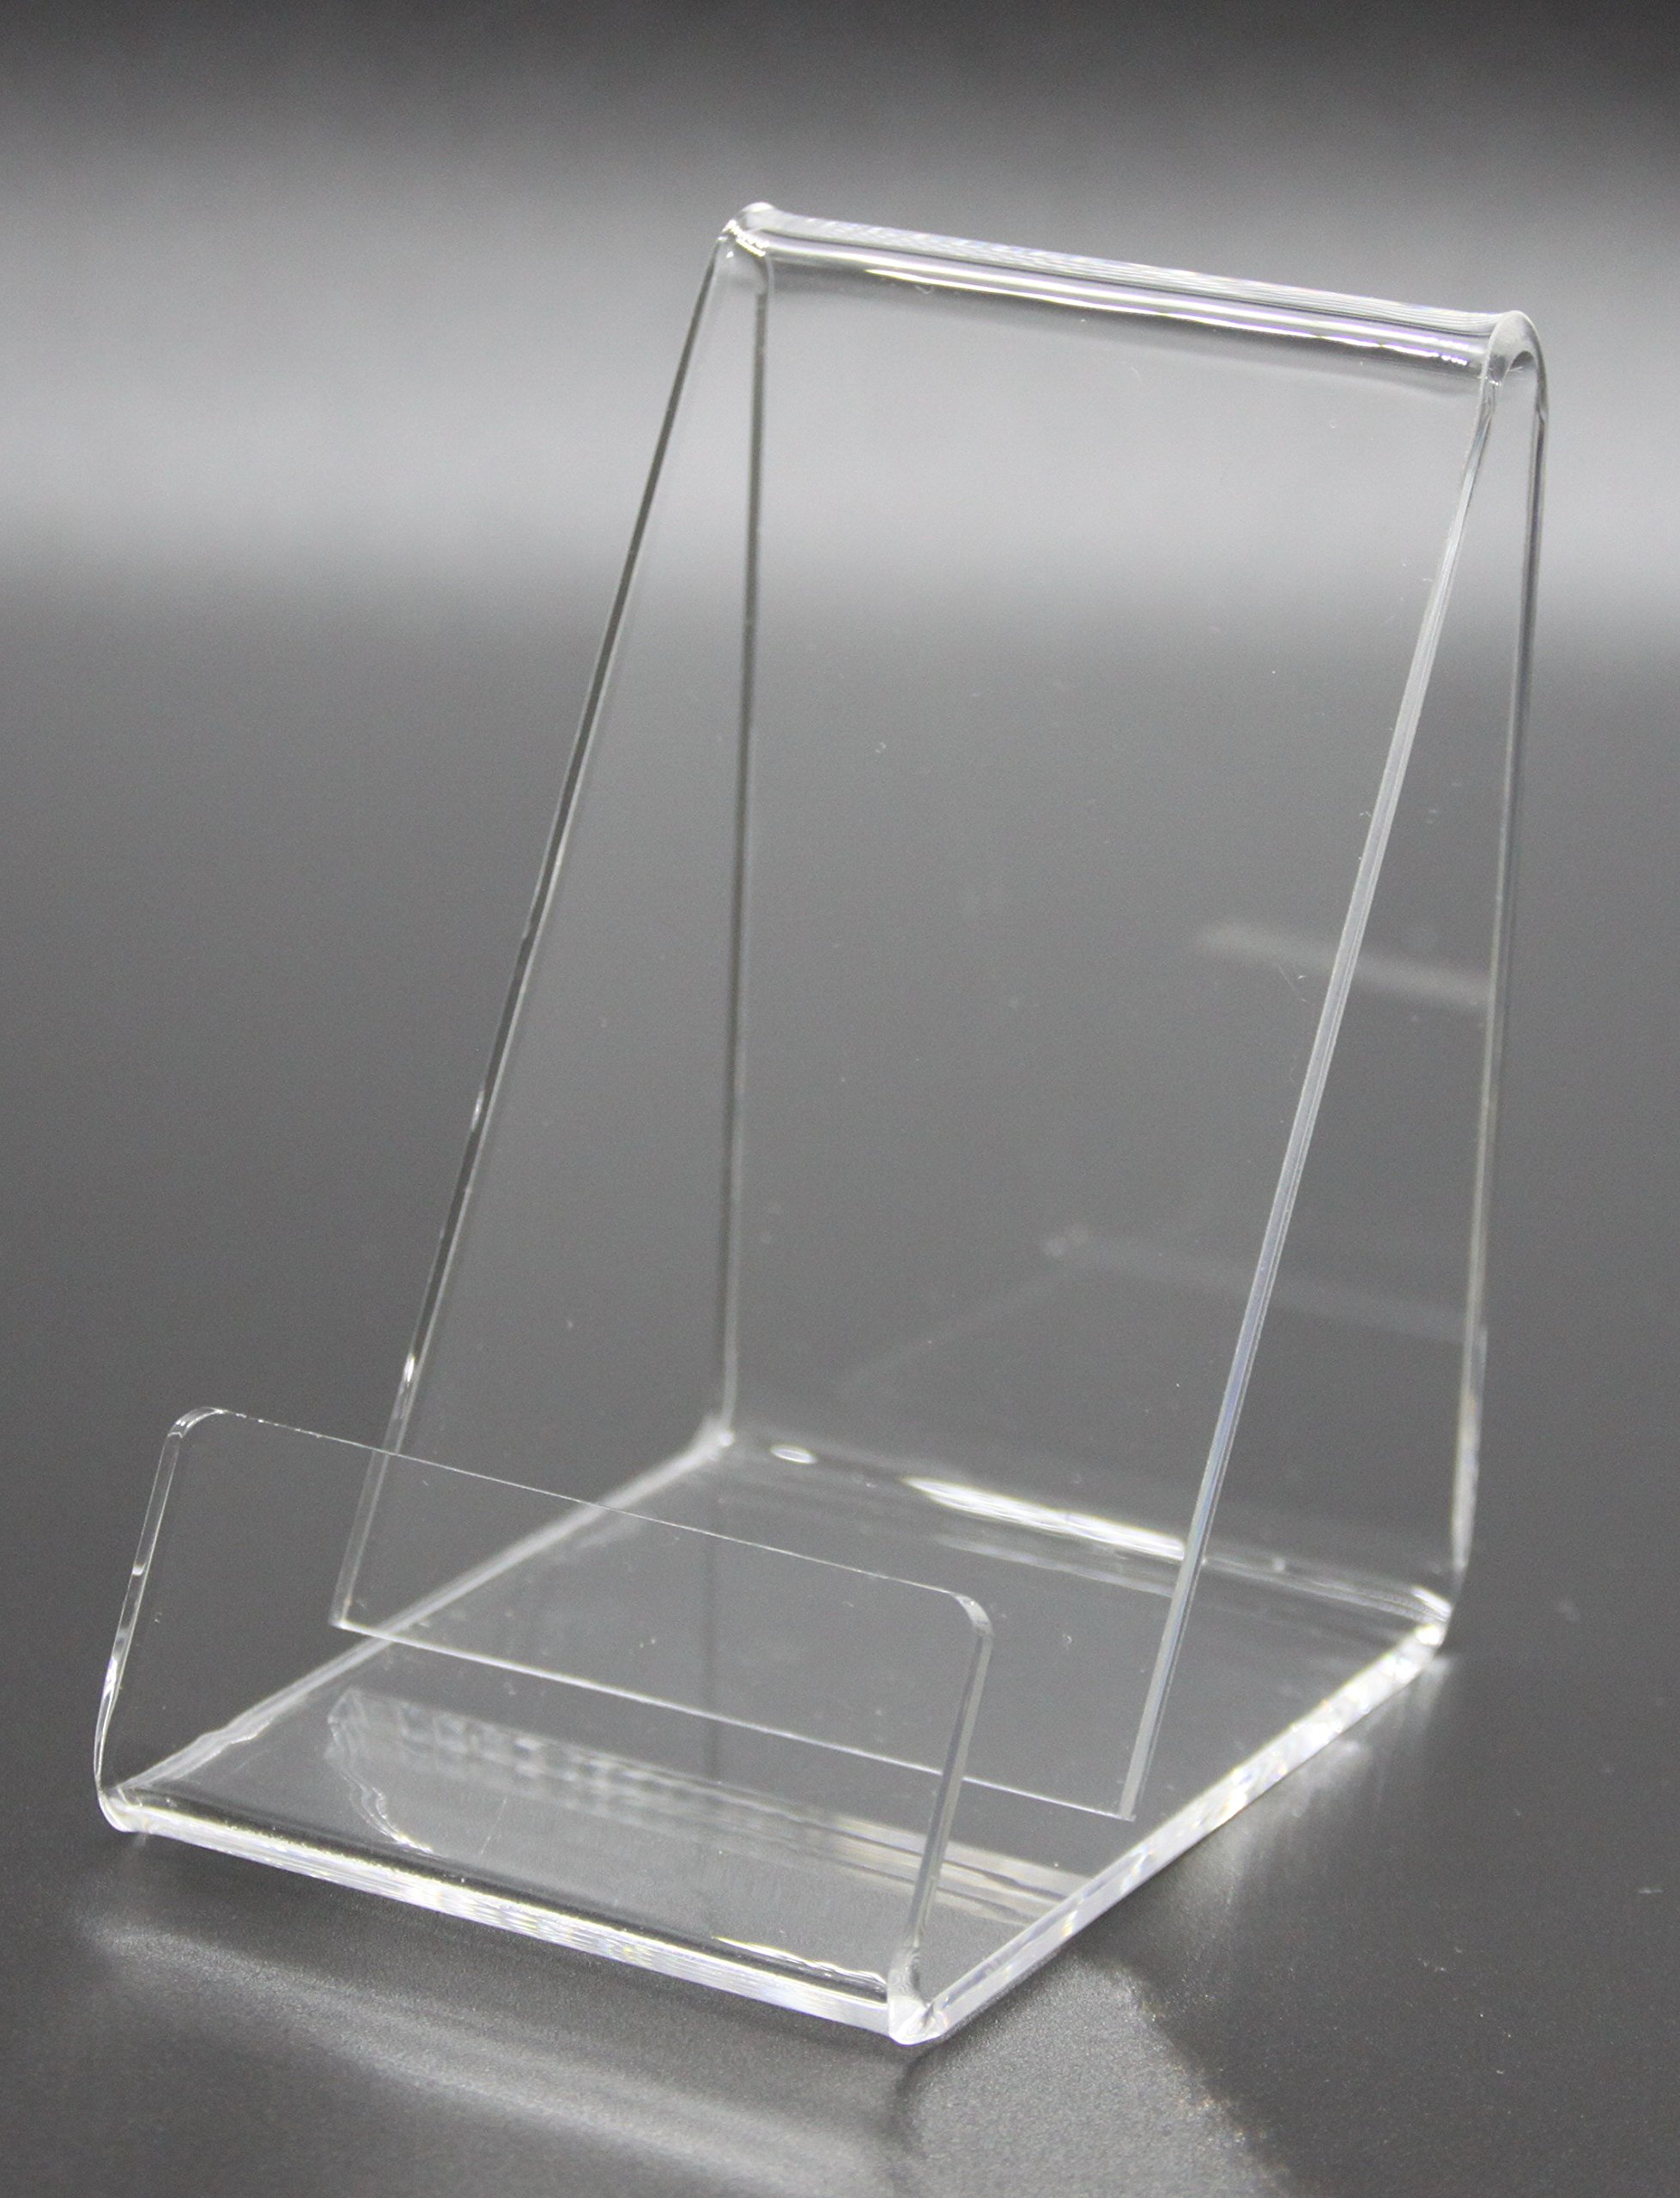 FixtureDisplays Business Card Size Clear Easel Acrylic 4 Cellphone Wallet 20008-E-NF by FixtureDisplays (Image #6)